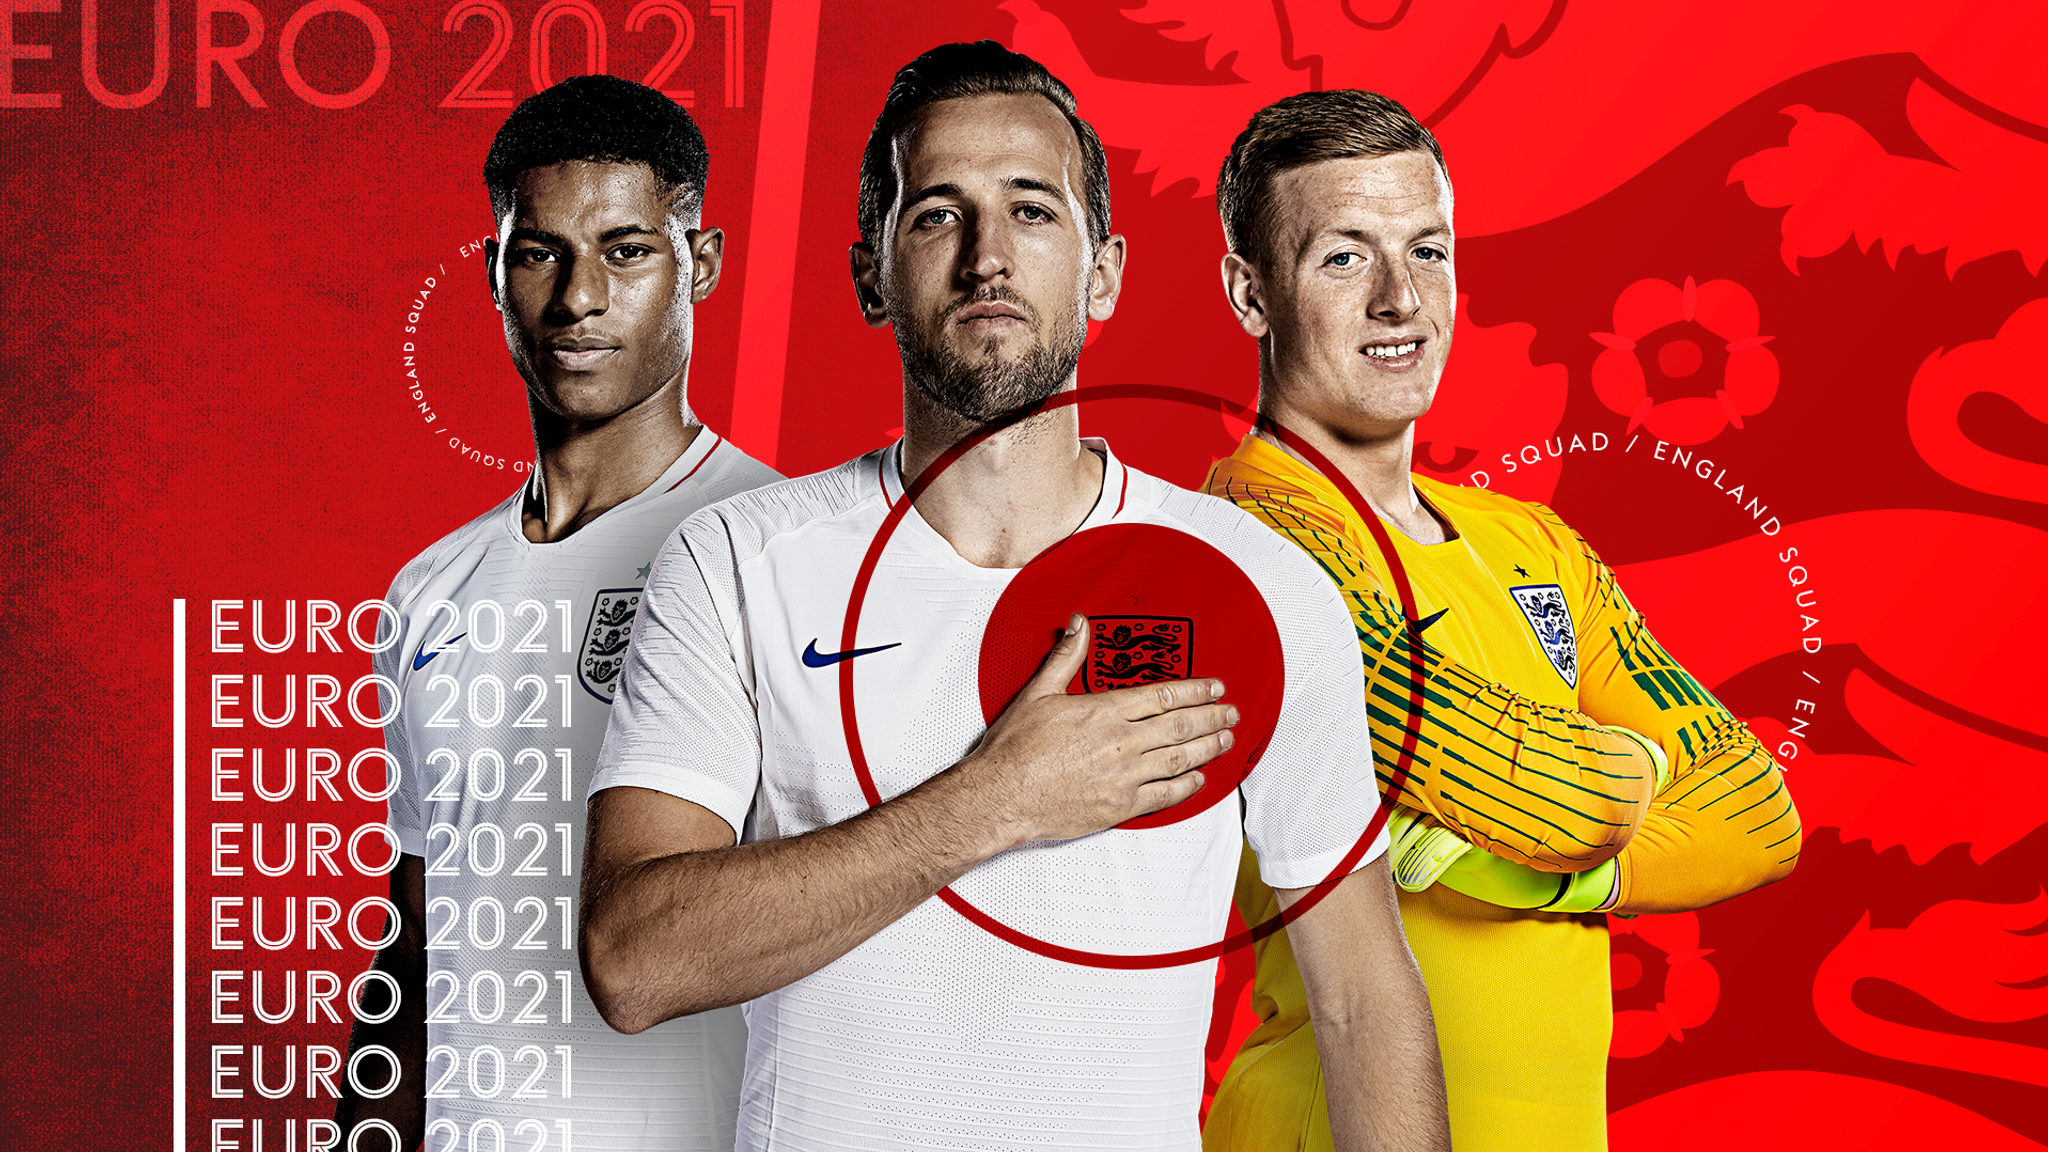 England france euro 2021 betting ethereum crypto currency exchange